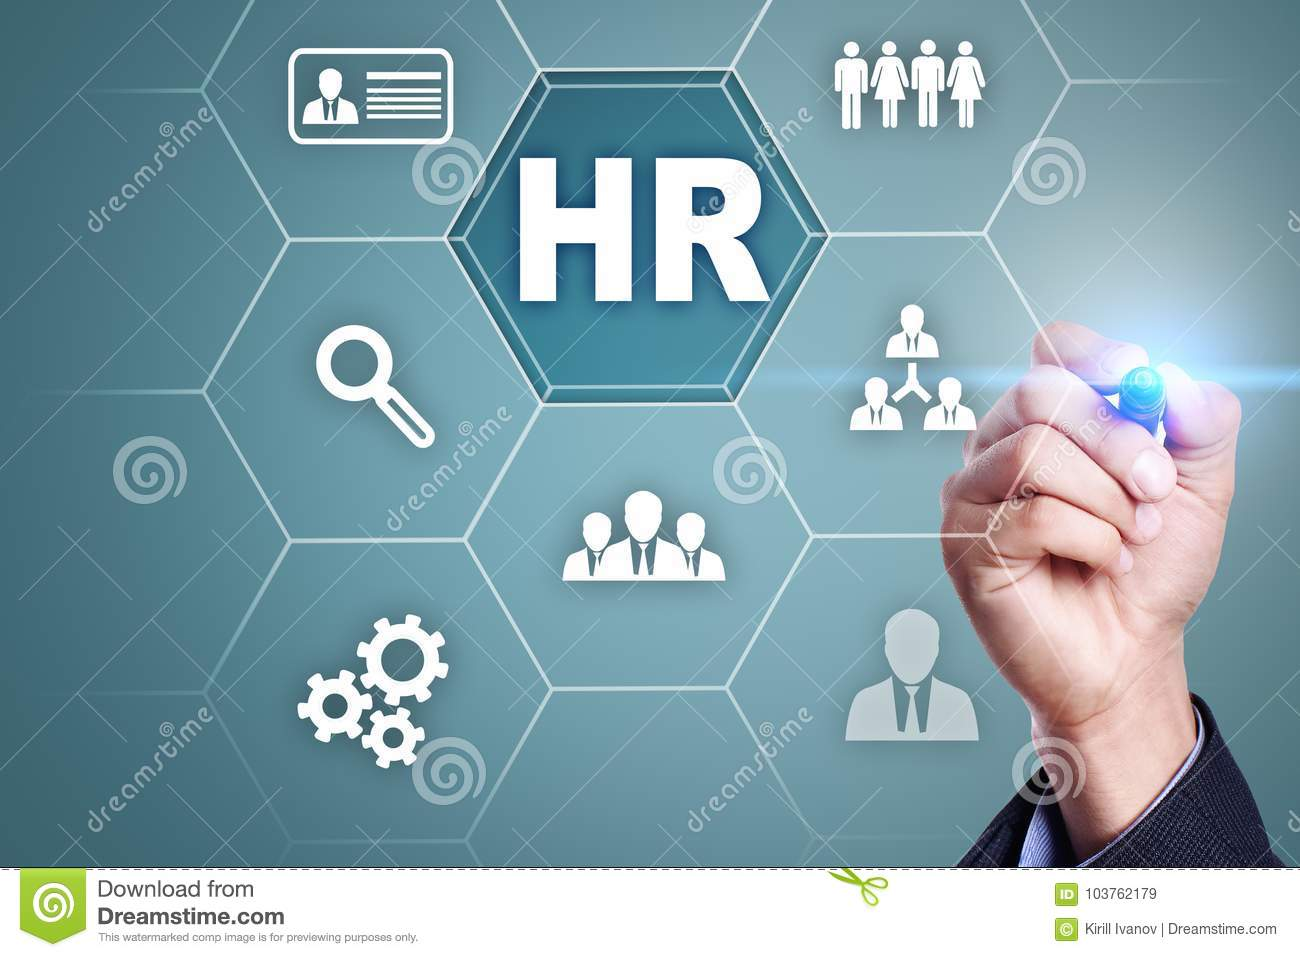 Human resource management, HR, recruitment, leadership and teambuilding.